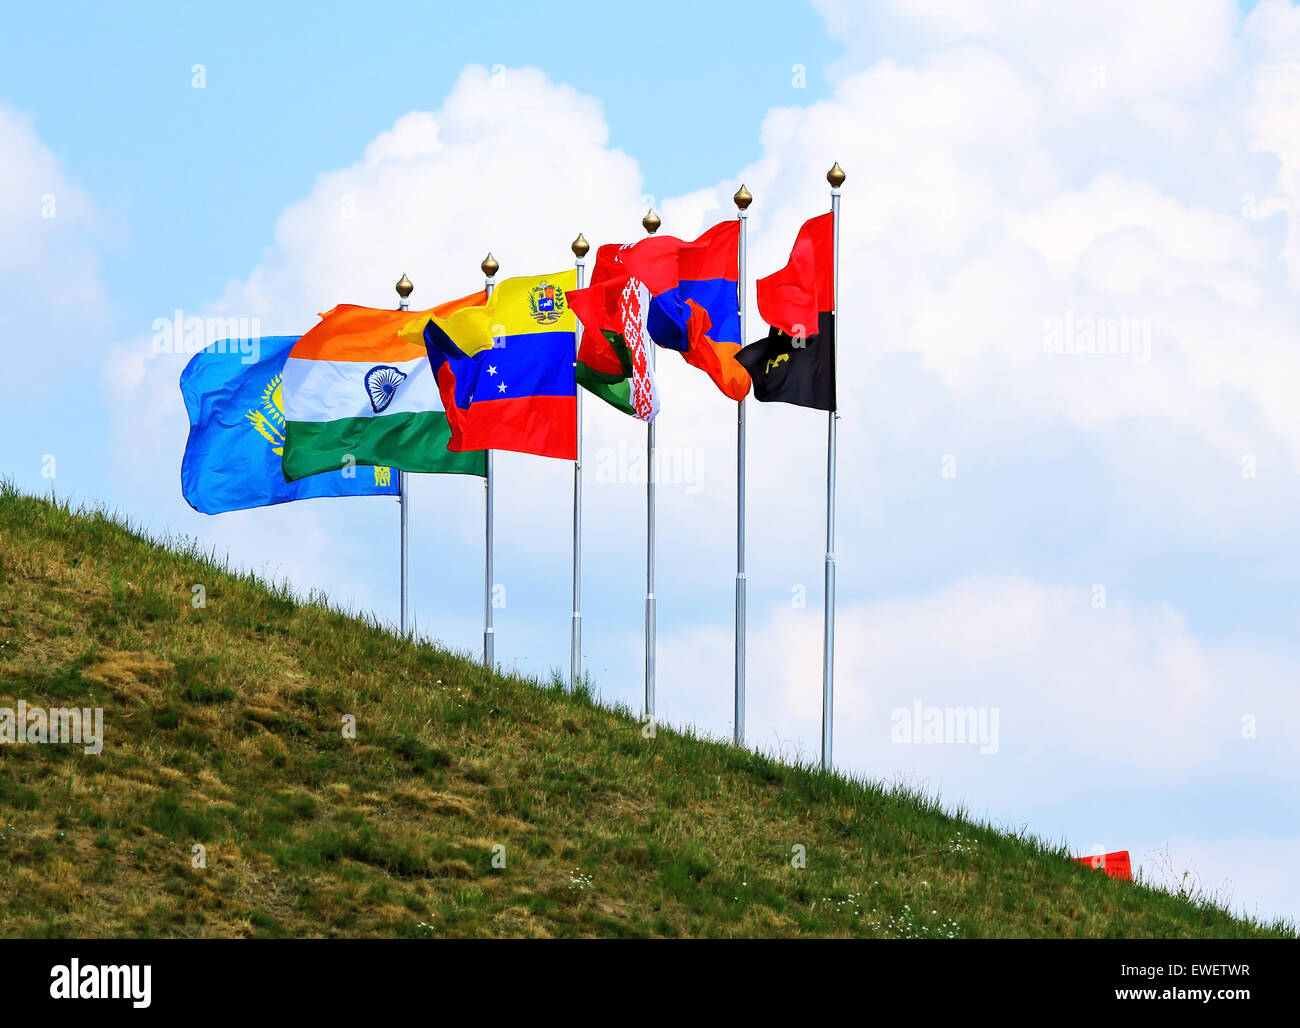 Flags of the countries participating in the tank biathlon 2014 in Russia - Angola, Armenia, Belarus, Venezuela, - Stock Image